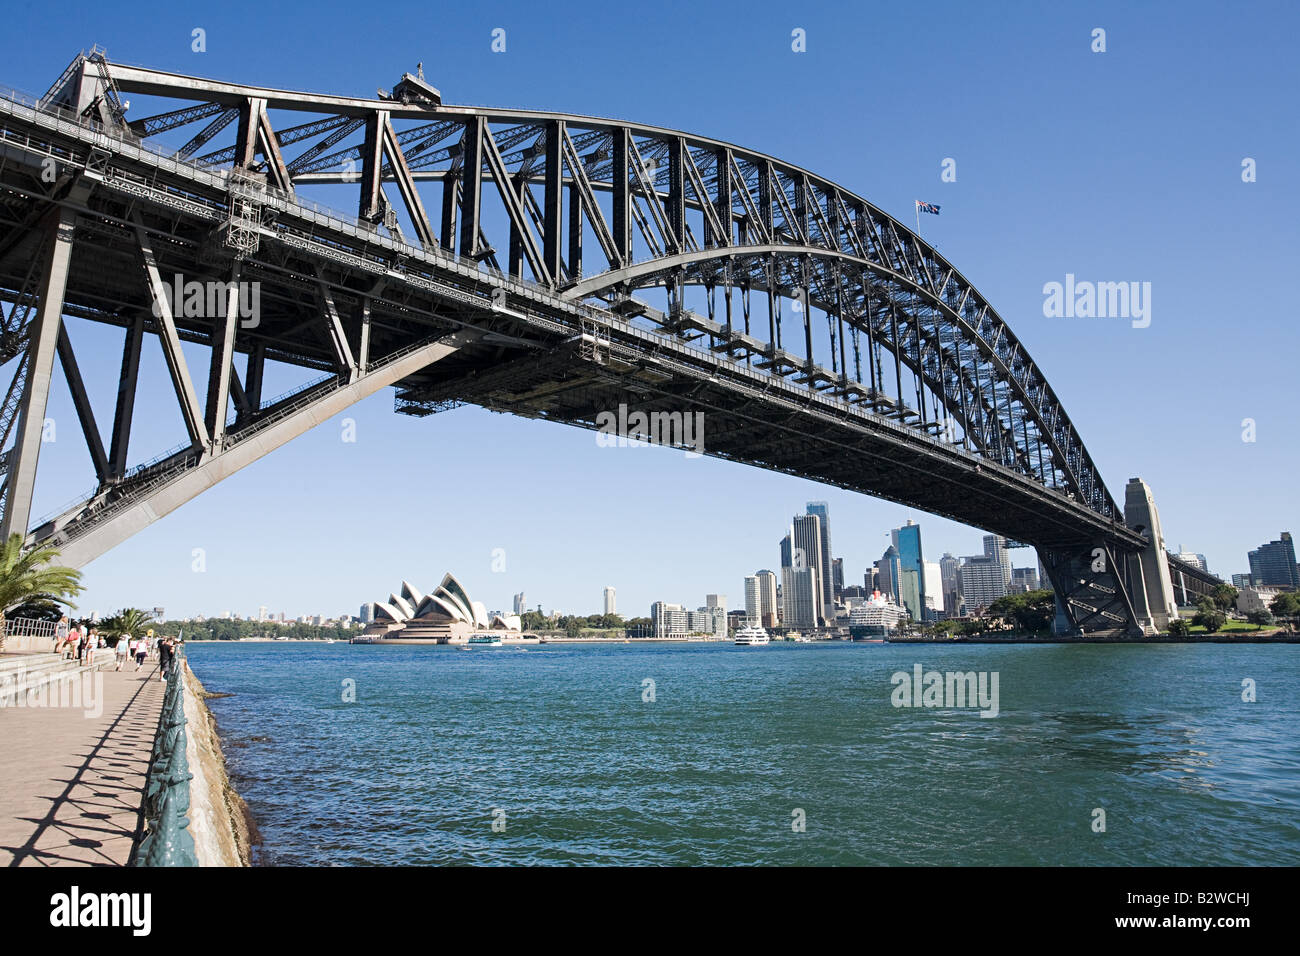 Sydney opera house and sydney harbour bridge - Stock Image